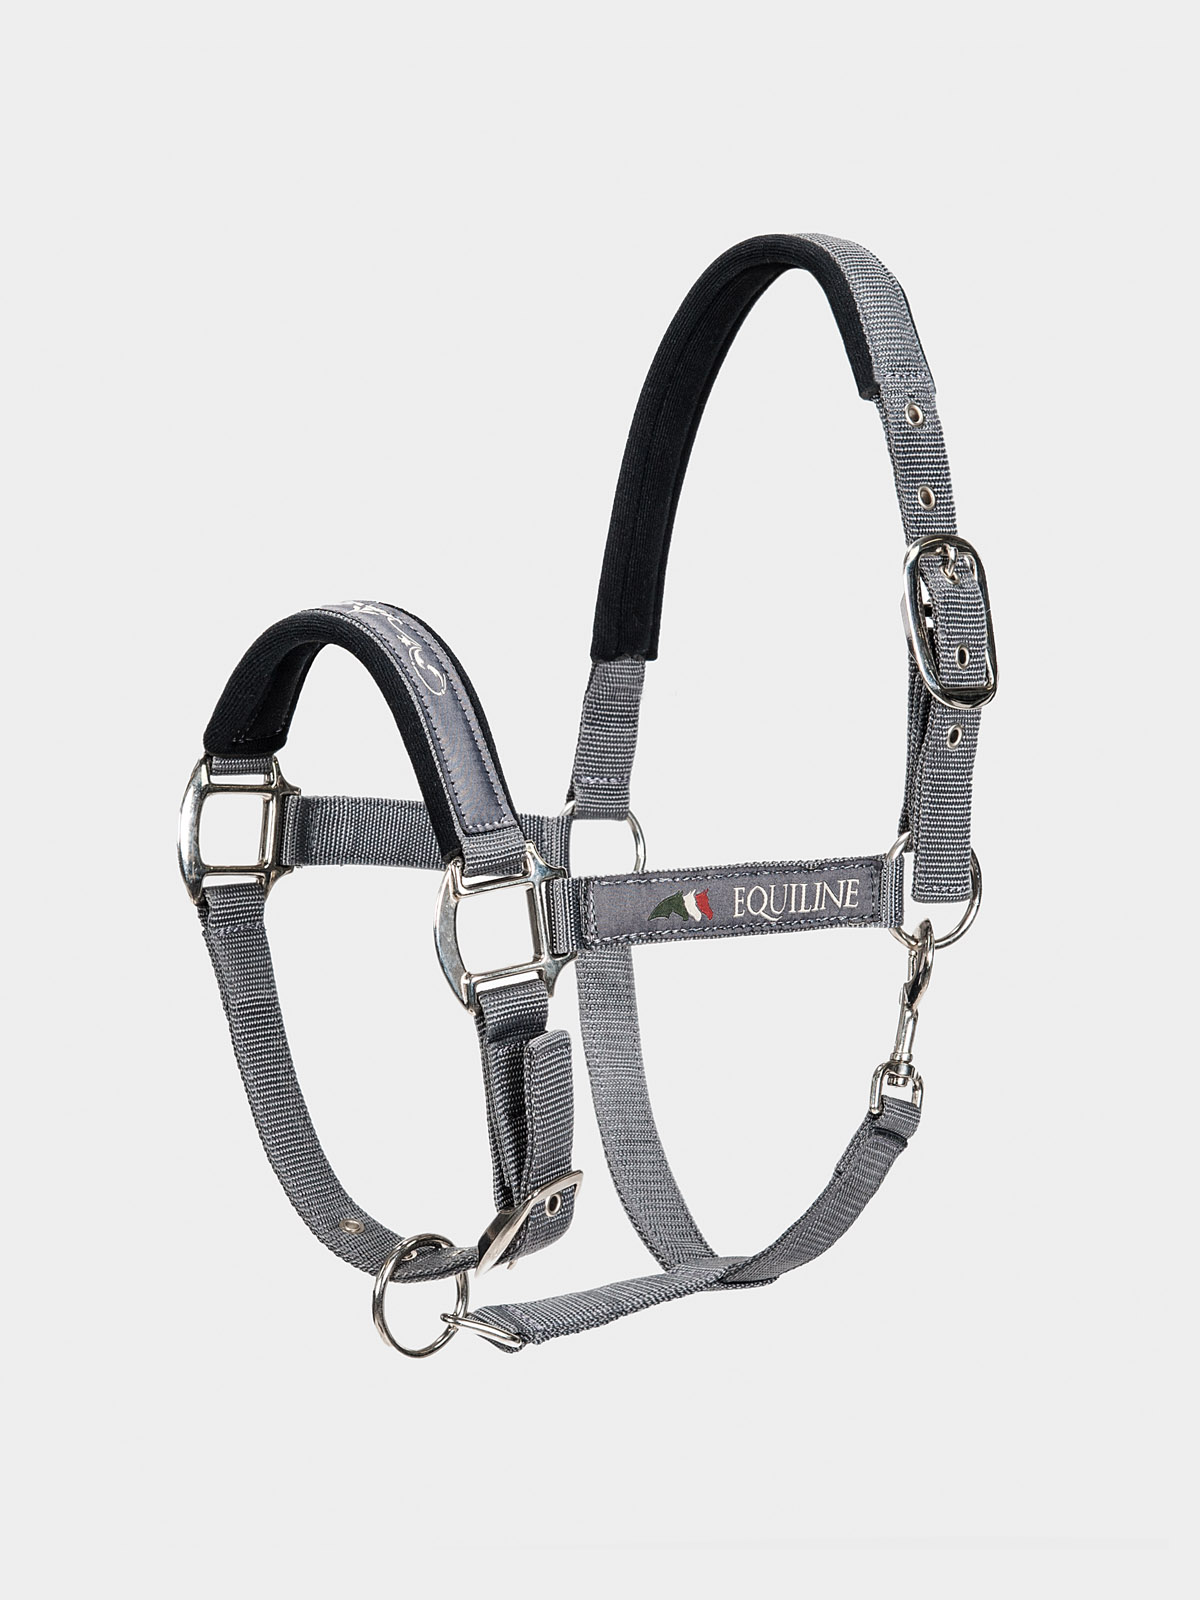 TIMMY - PADDED NYLON HALTER 5